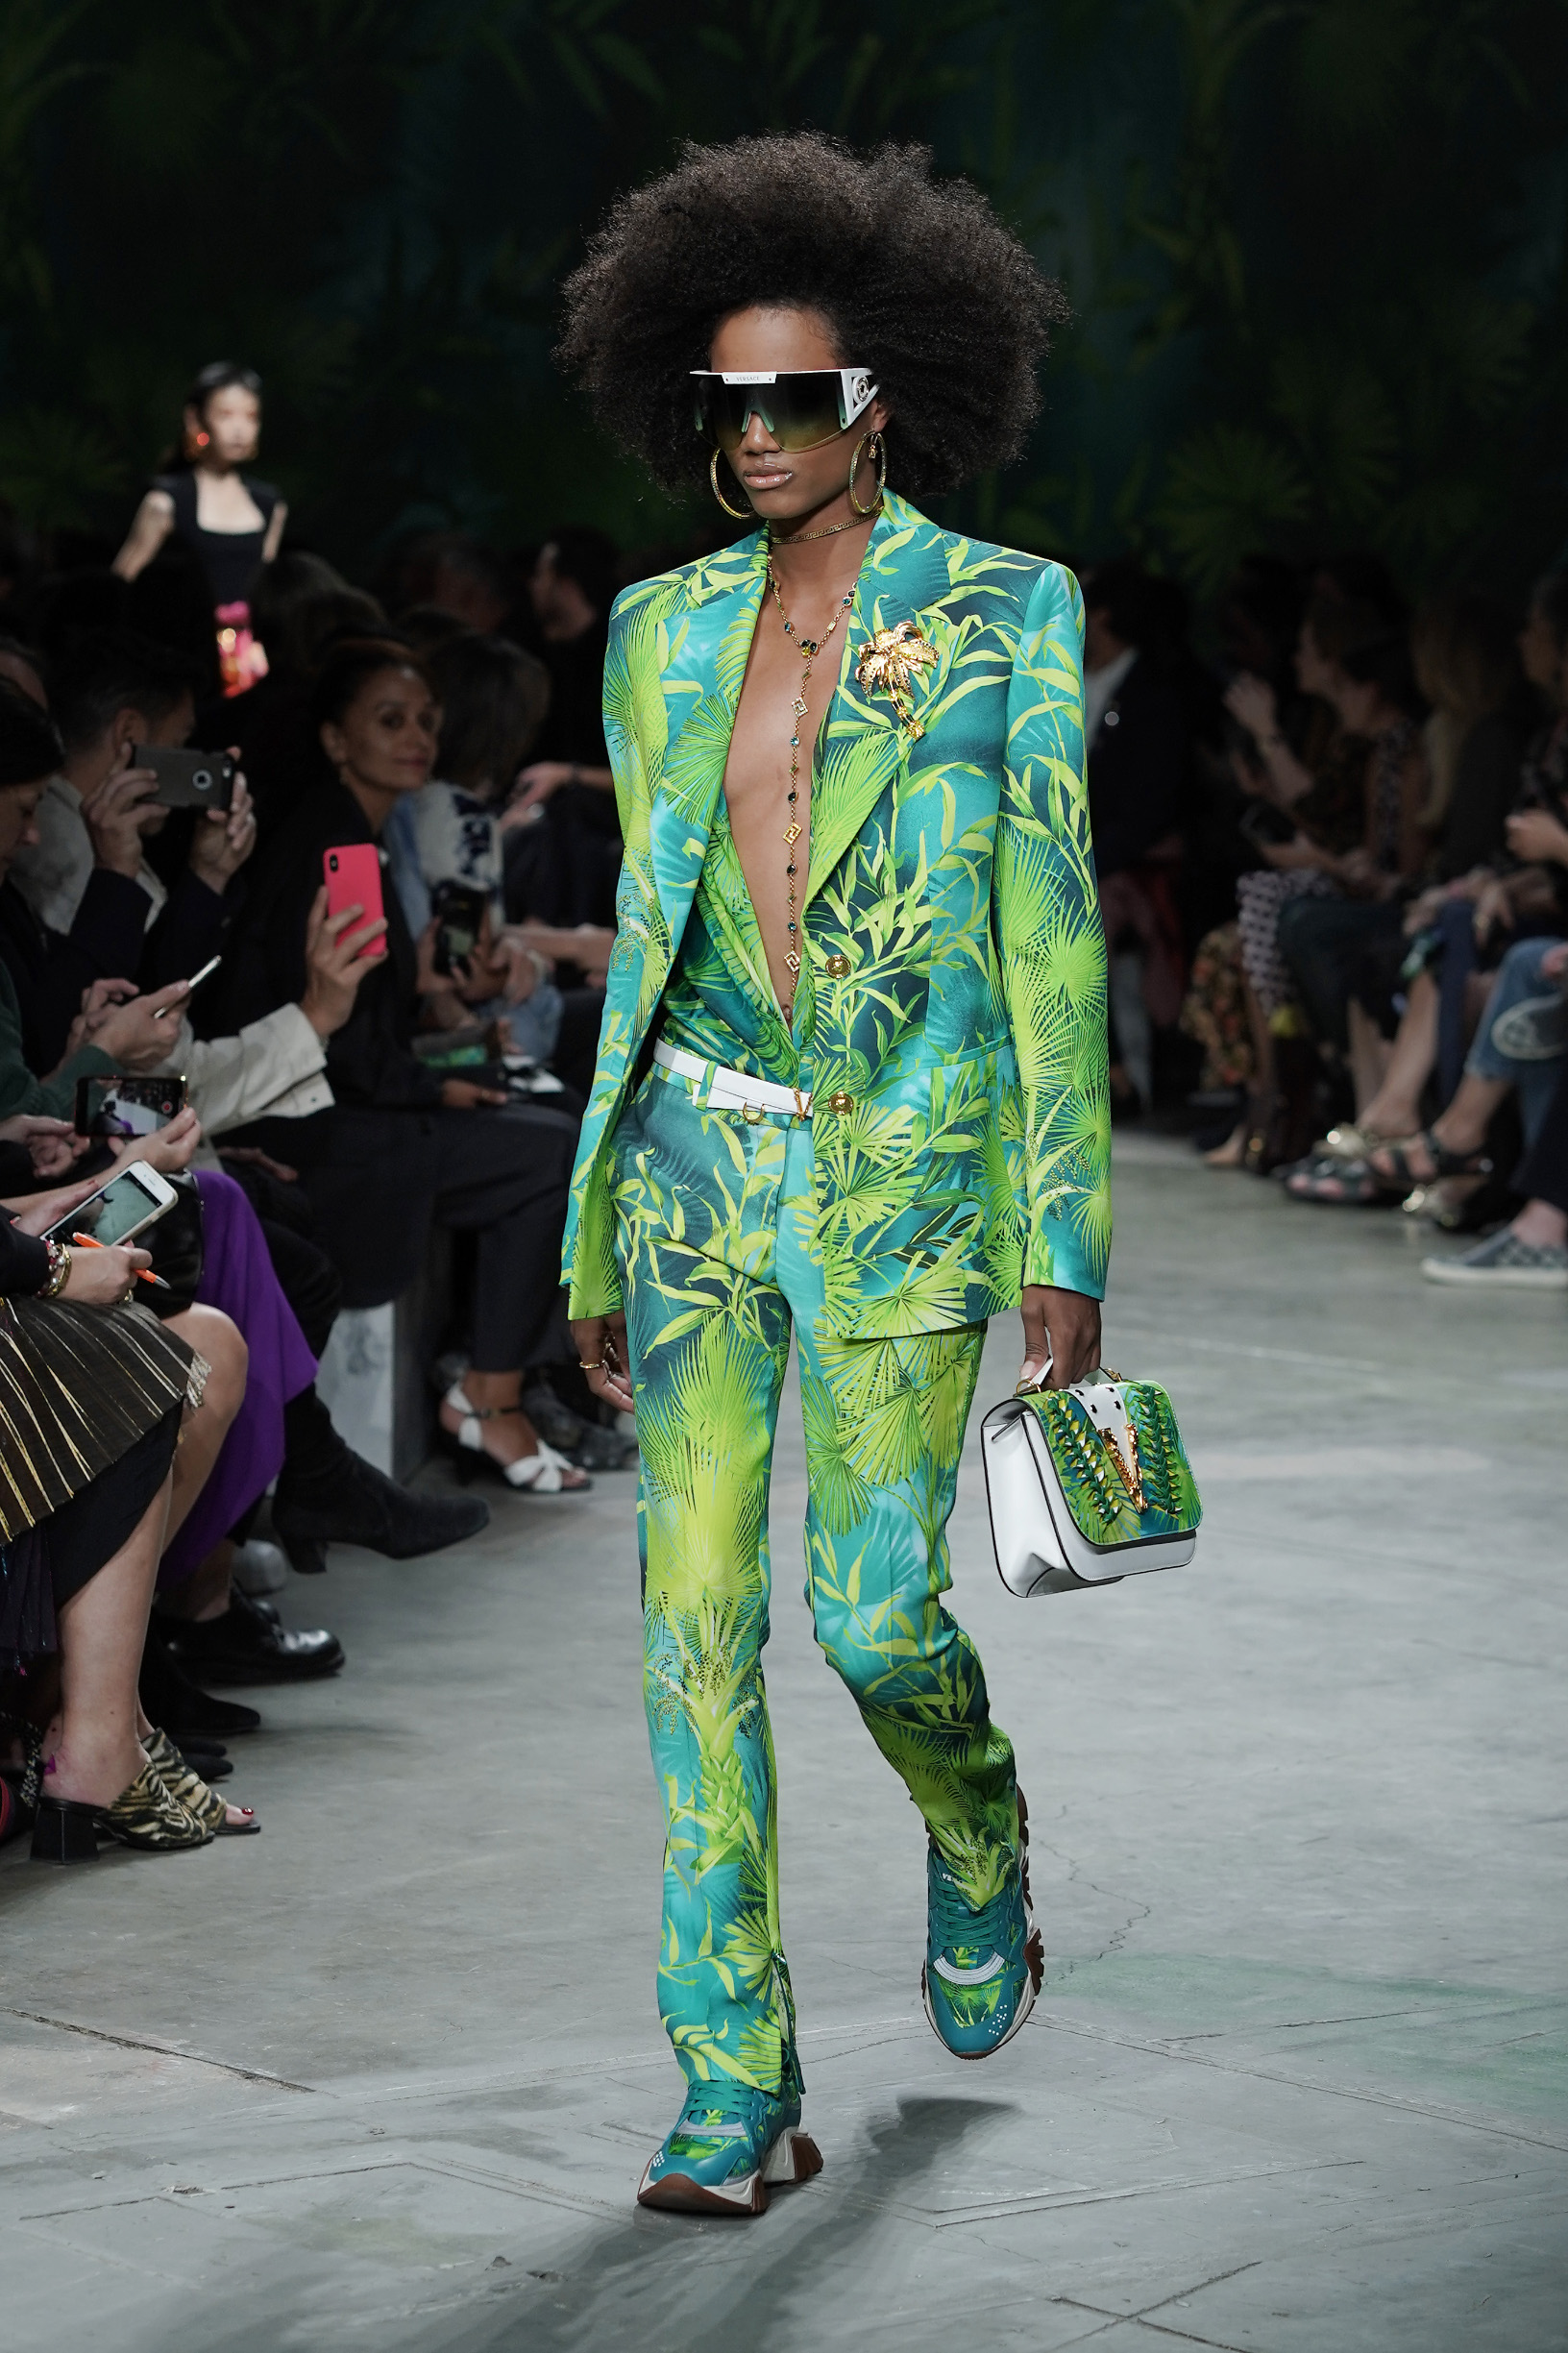 MILAN, ITALY - SEPTEMBER 20: A model walks the runway at the Versace show during the Milan Fashion Week Spring/Summer 2020 on September 20, 2019 in Milan, Italy. (Photo by Vittorio Zunino Celotto/Getty Images)